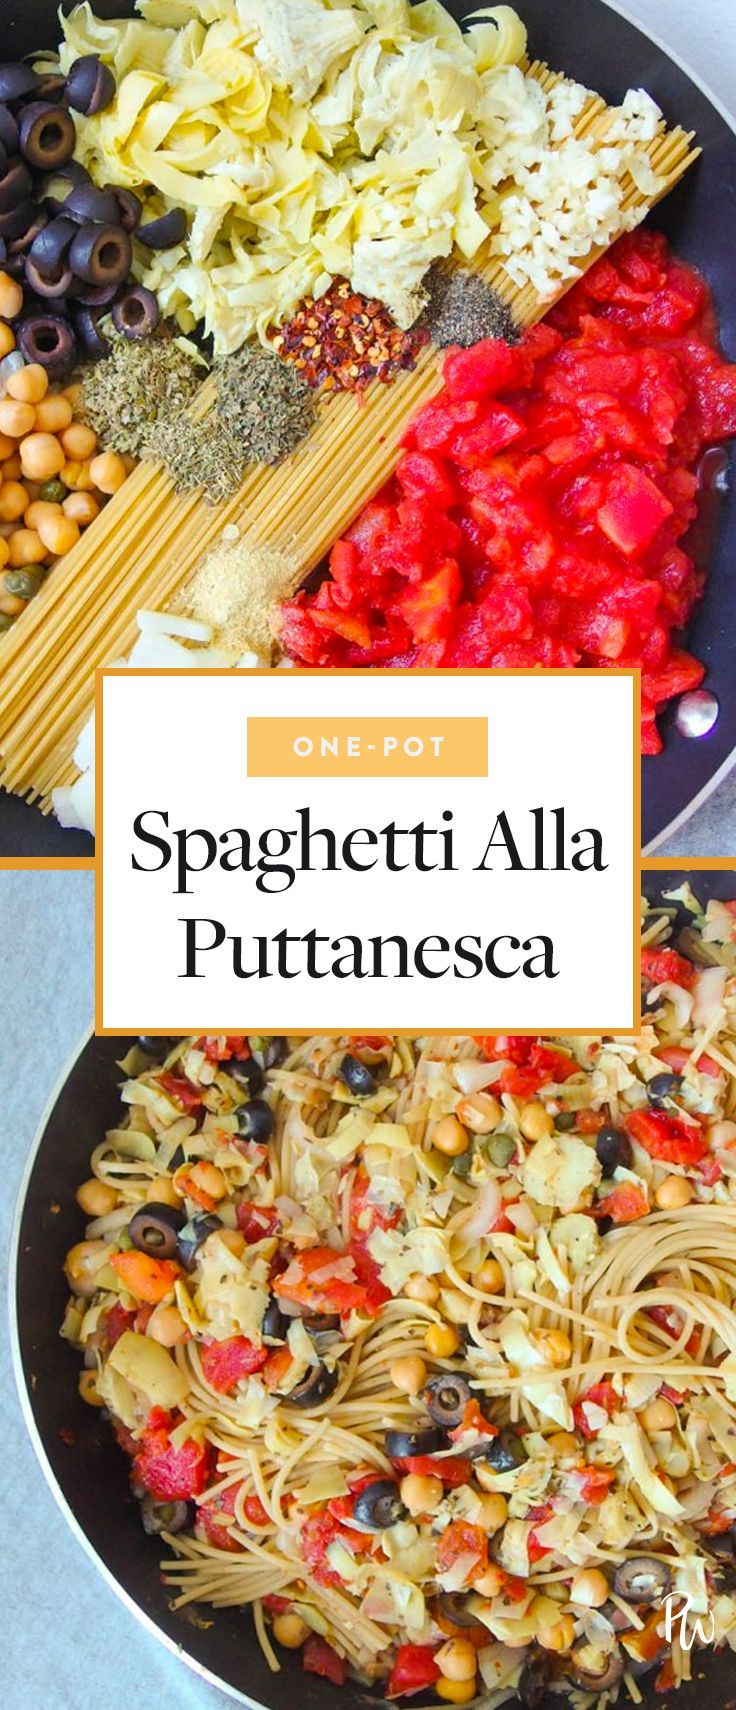 Get the recipe for this spaghetti alla puttanesca by Yum It's Vegan and more delicious pasta recipes under 500 calories. #recipes #healthyrecipes #veganrecipes #veganrecipes #puttanesca #pastarecipes #pasta